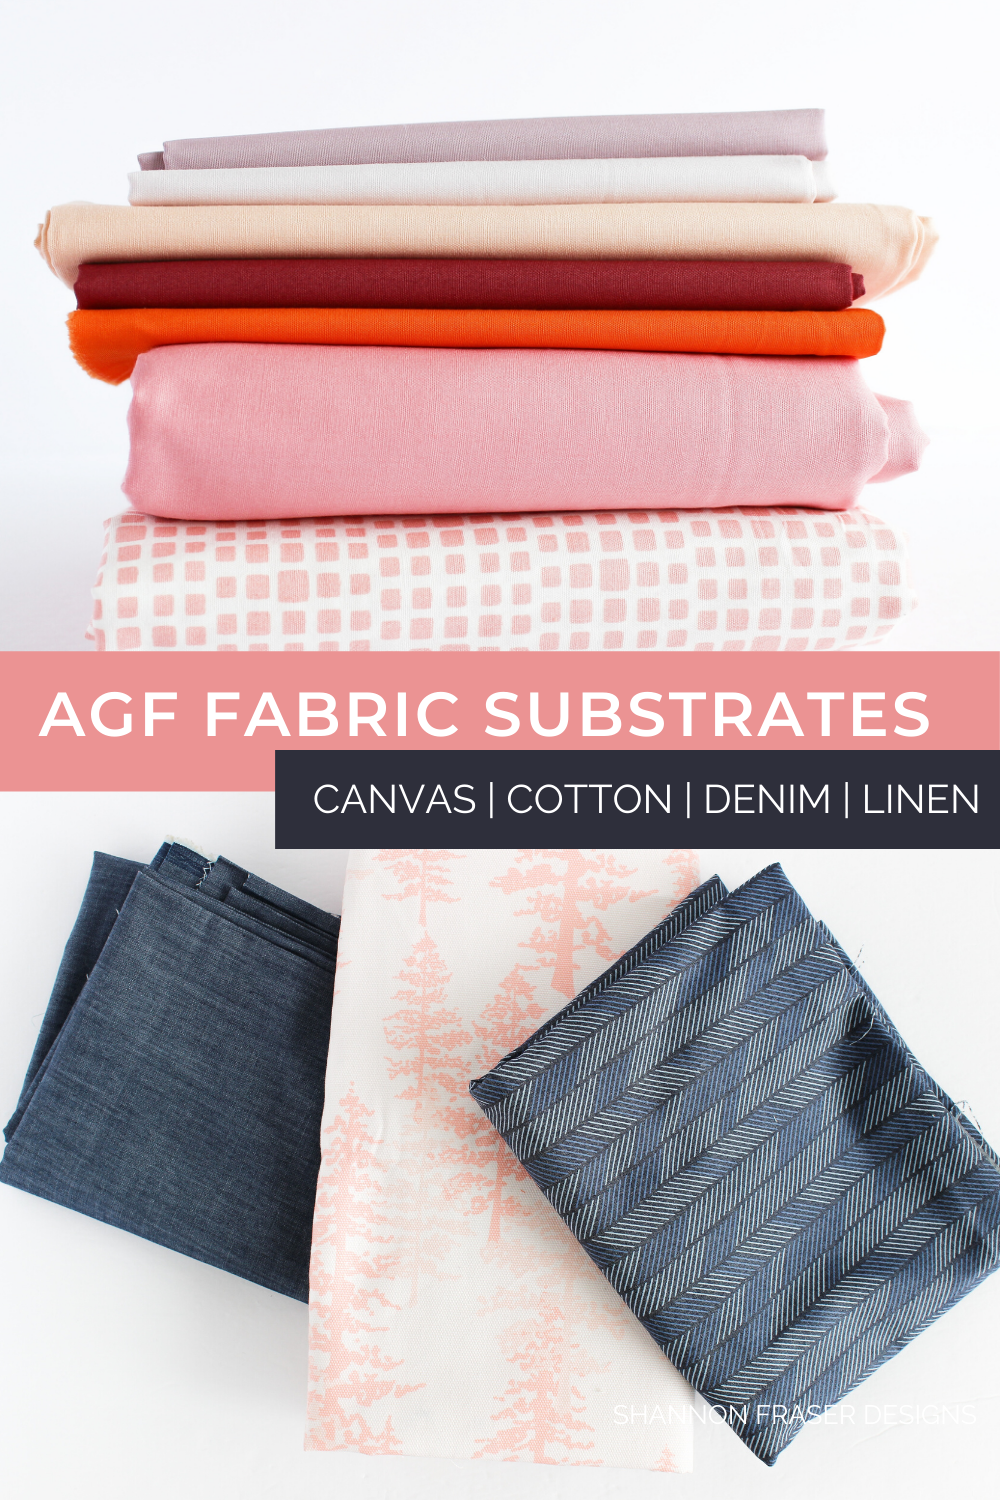 AGF PURE Solids in coral, peach, orange, burgundy and lavender with some AGF Denim and canvas